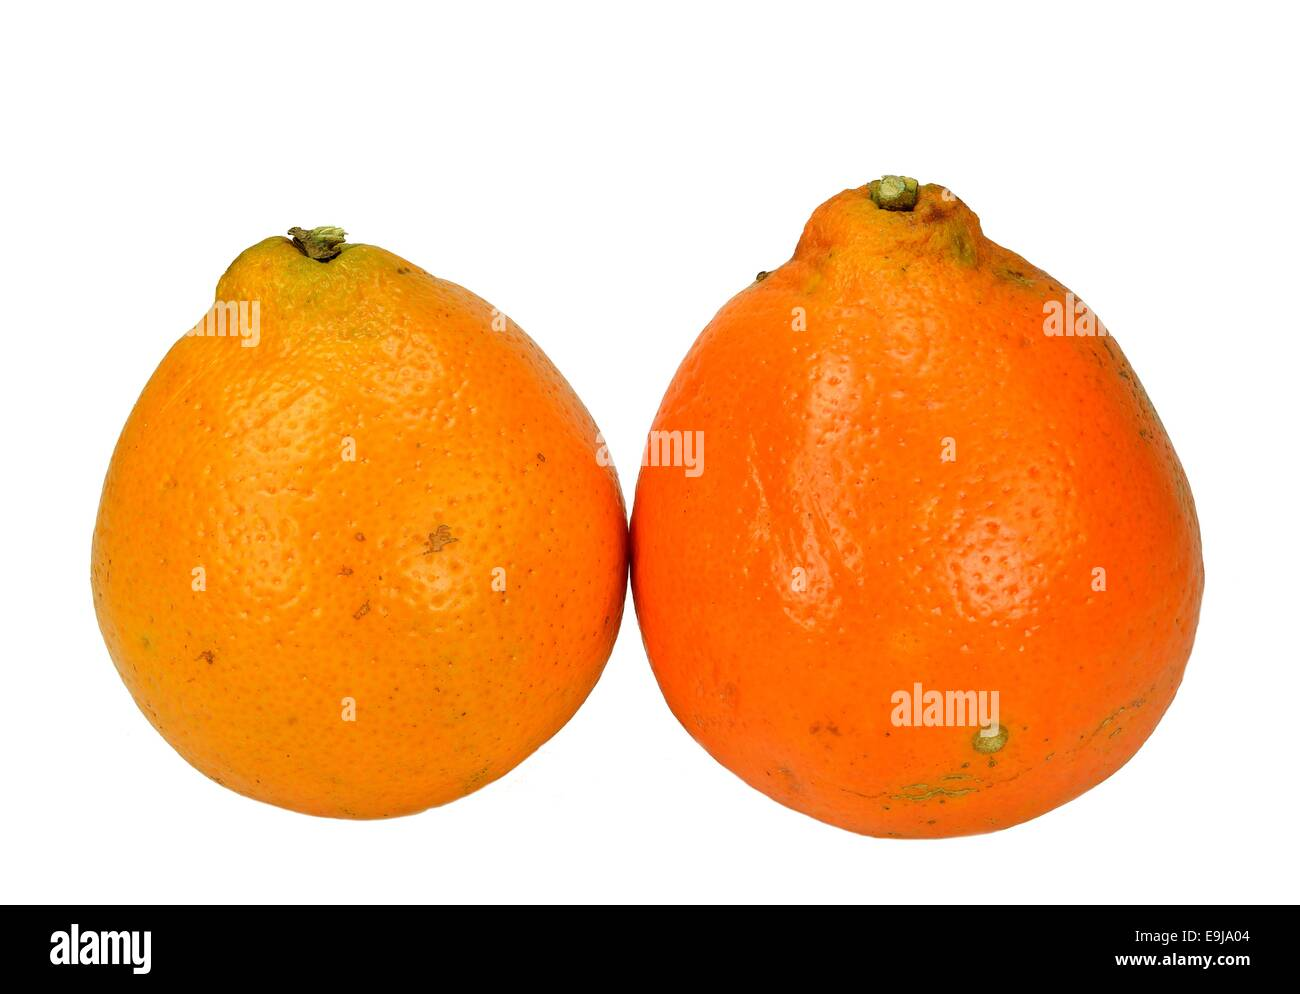 Two Mineola Tangelo (Honey Bell) oranges on a white background. - Stock Image